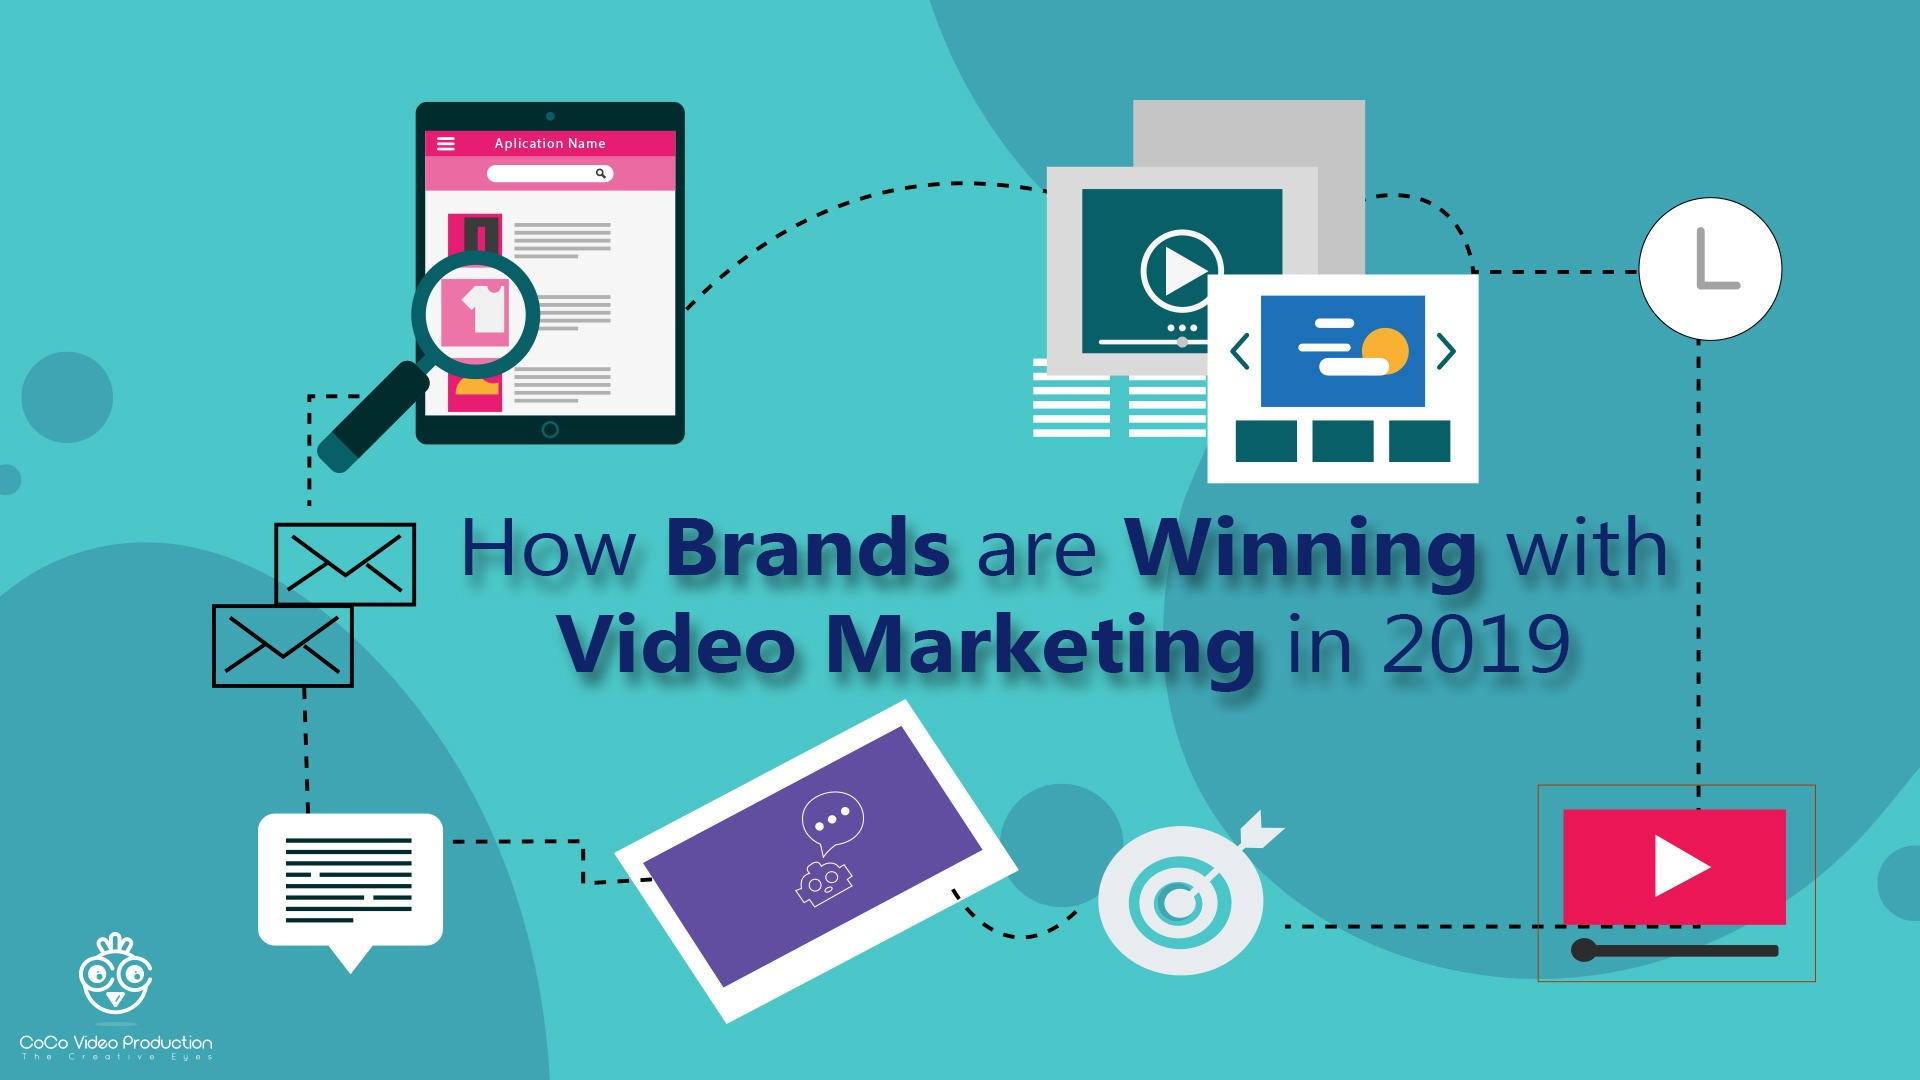 How Brands are Winning with Video Marketing in 2019